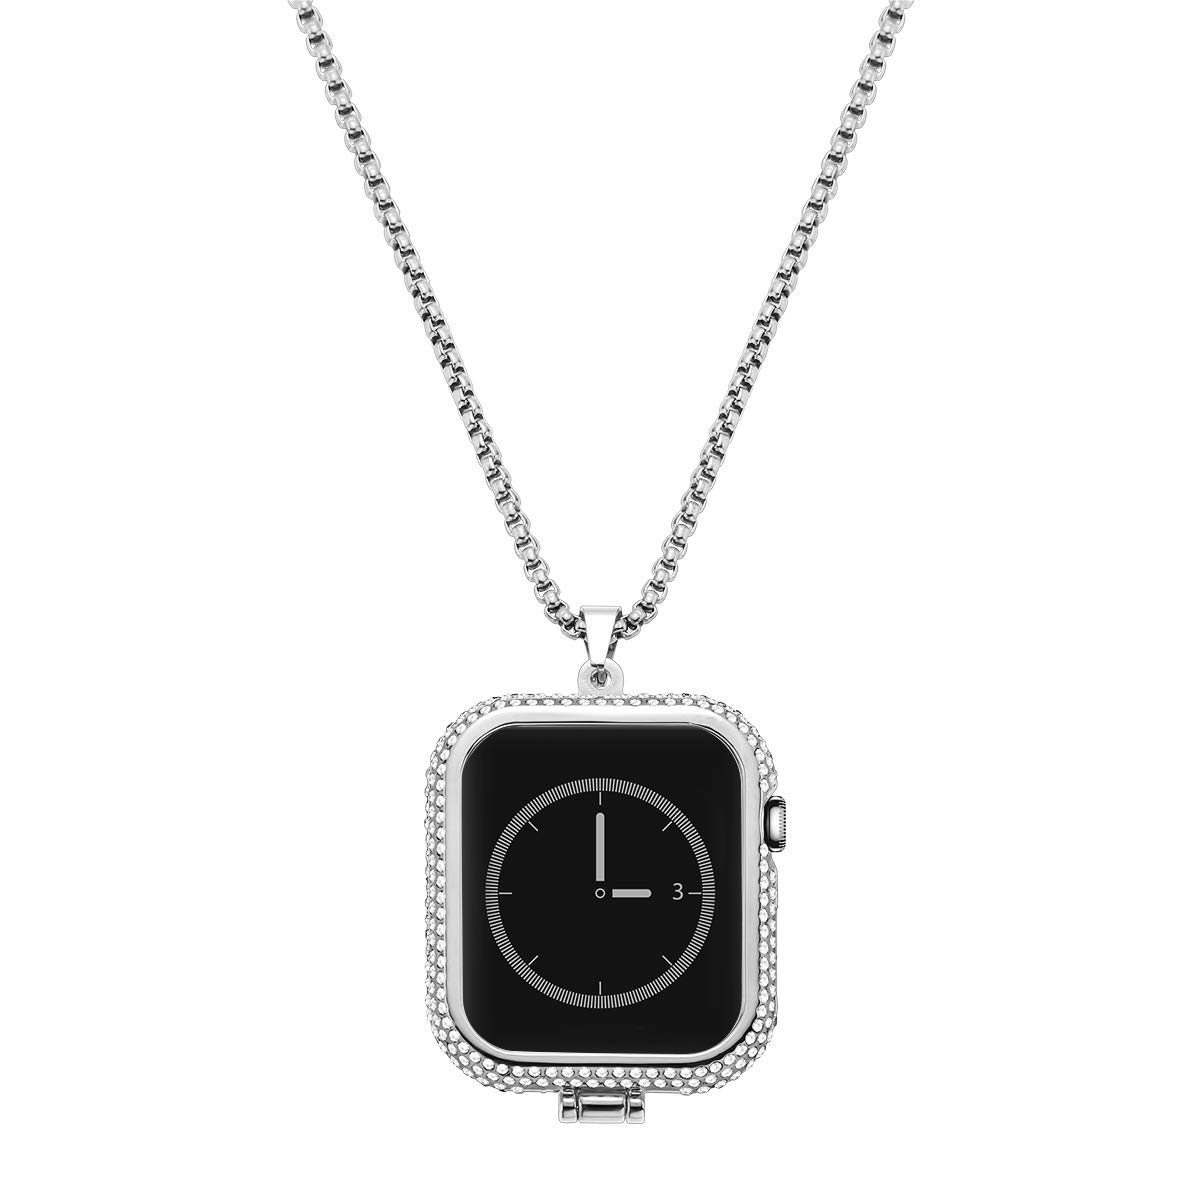 NICERIO Diamond Metal Frame Protective Case Bumper Necklace Pendant Replacement Compatible with Apple Watch Series 4 Silver (40mm) by Hemobllo